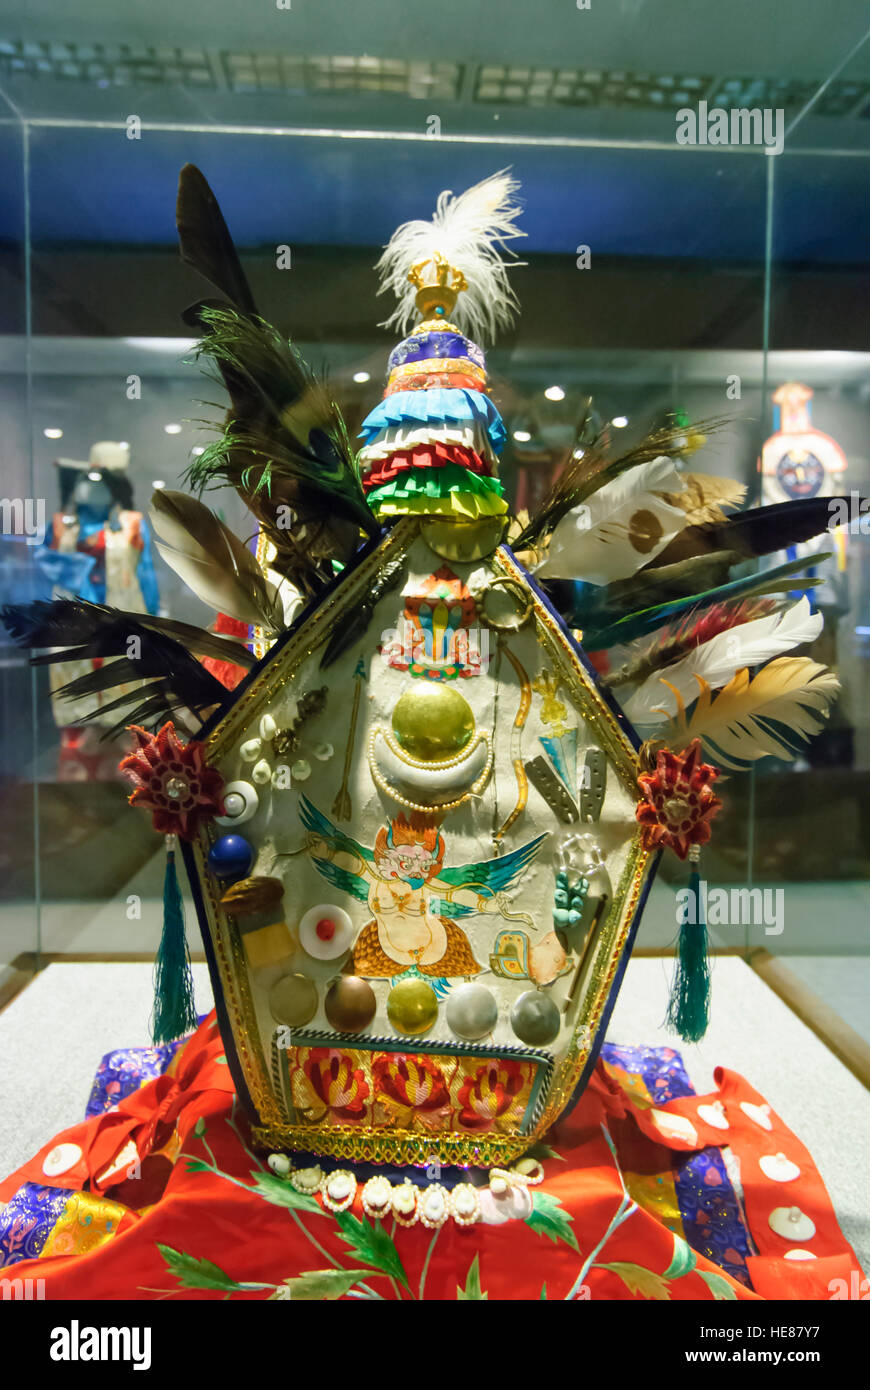 Lhasa: Tibet Museum; Hat that belonged to Songsten Gampo, the Tibetan ruler from 630 to 649, Tibet, China - Stock Image